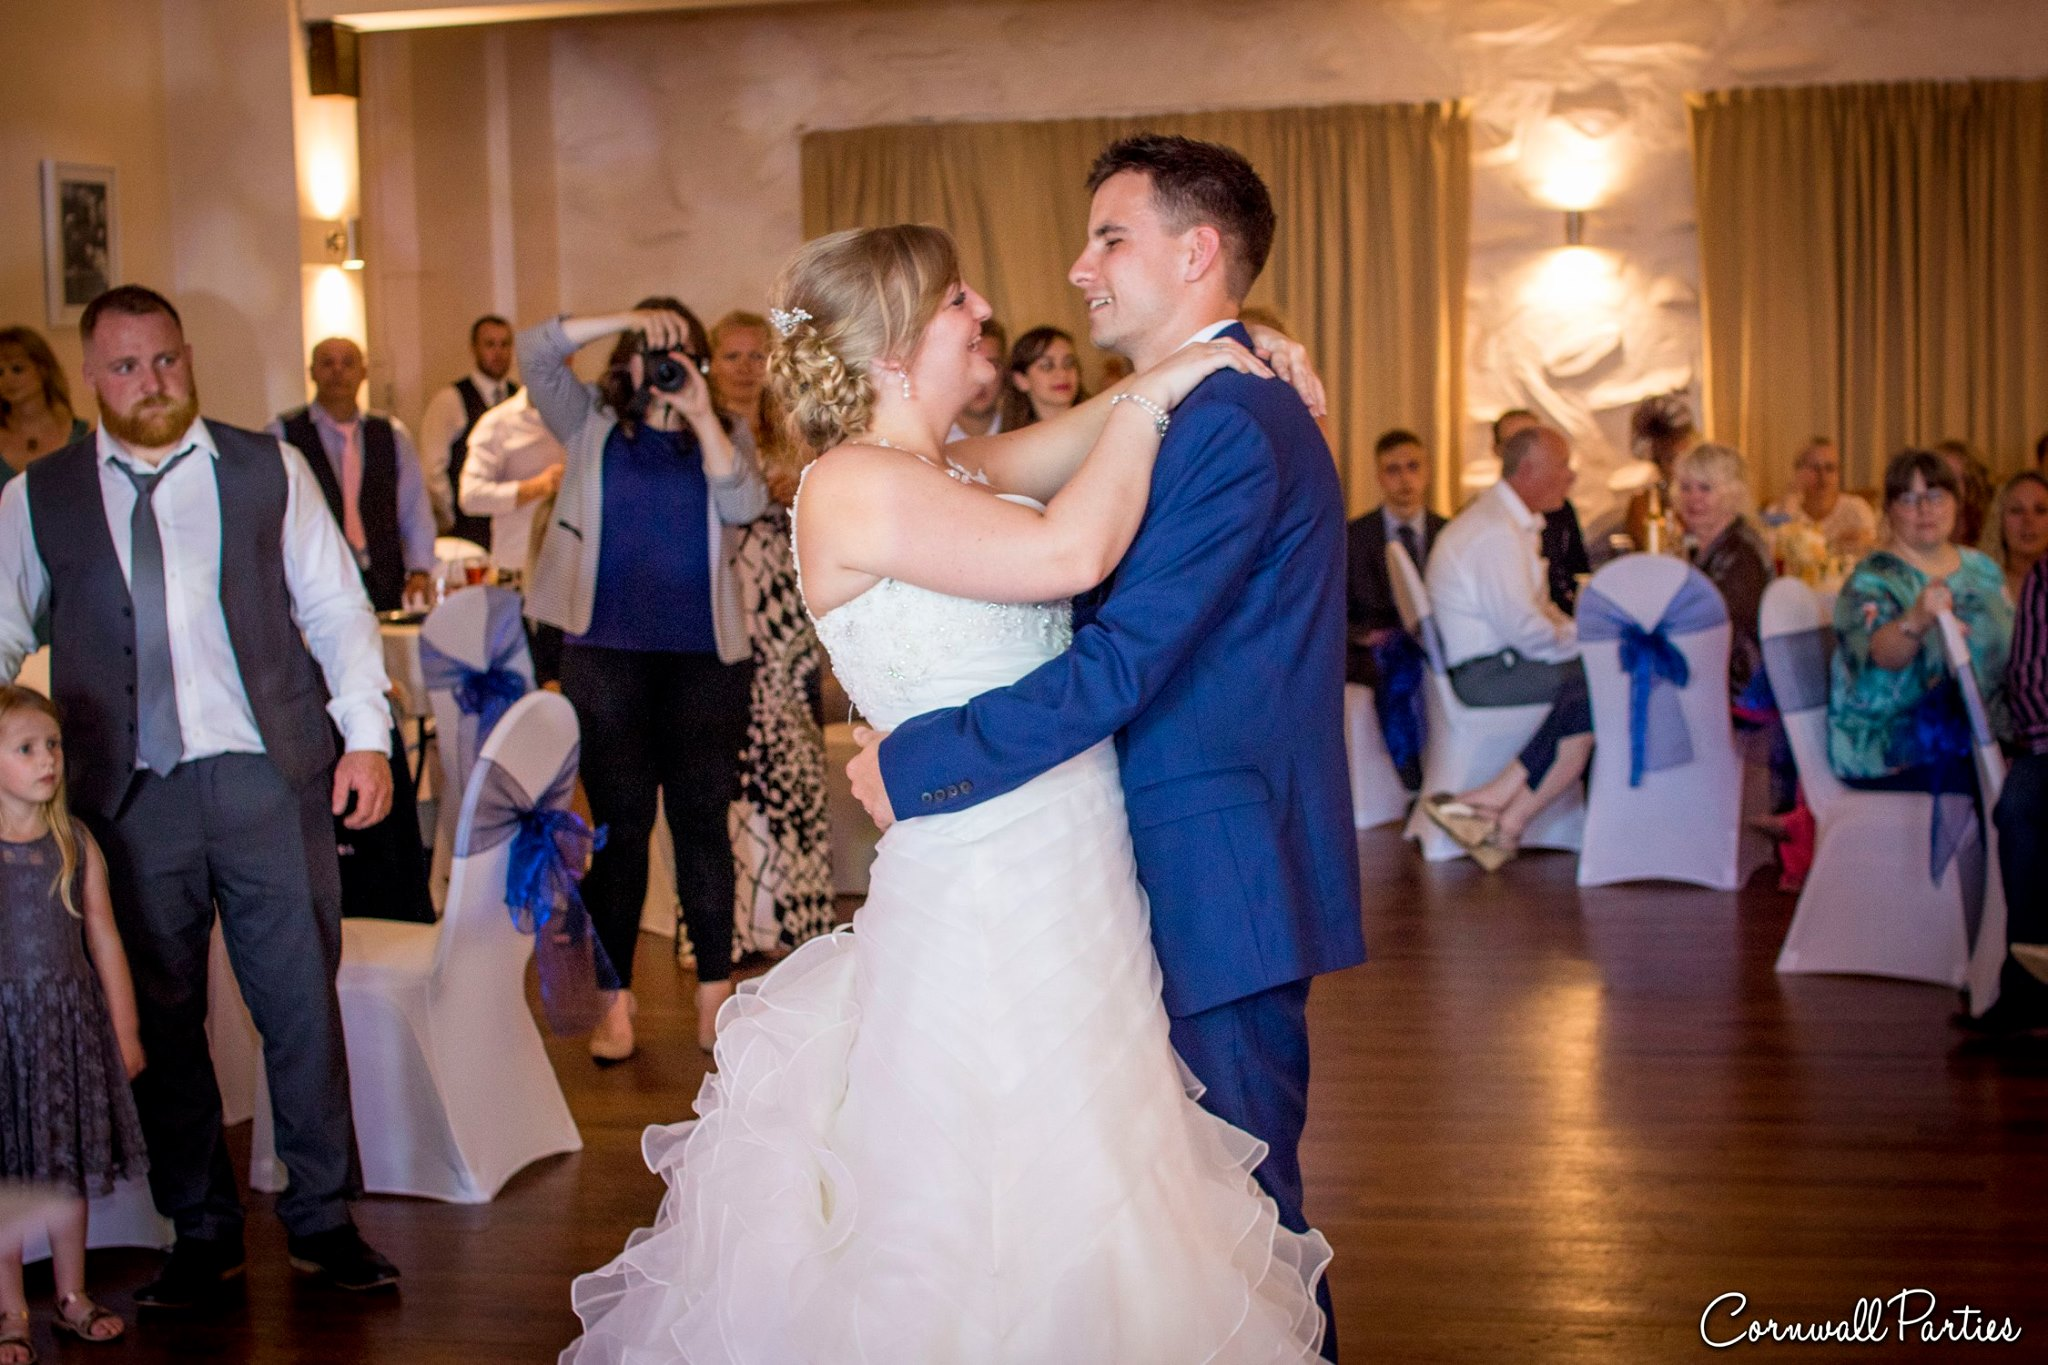 cornwall wedding disco dj photographer 30